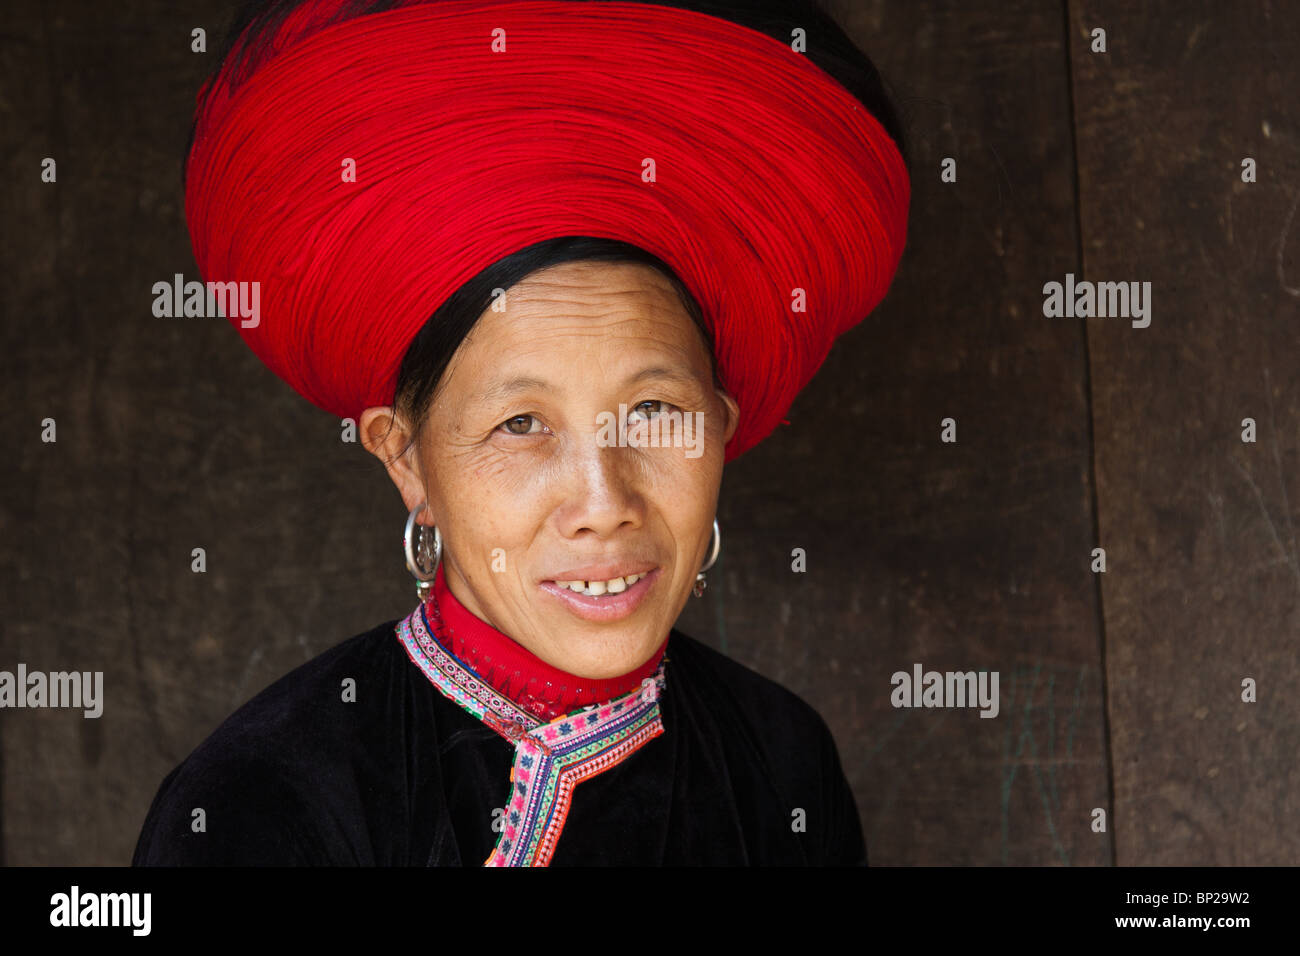 hmong woman with headress made of red yarn - Stock Image